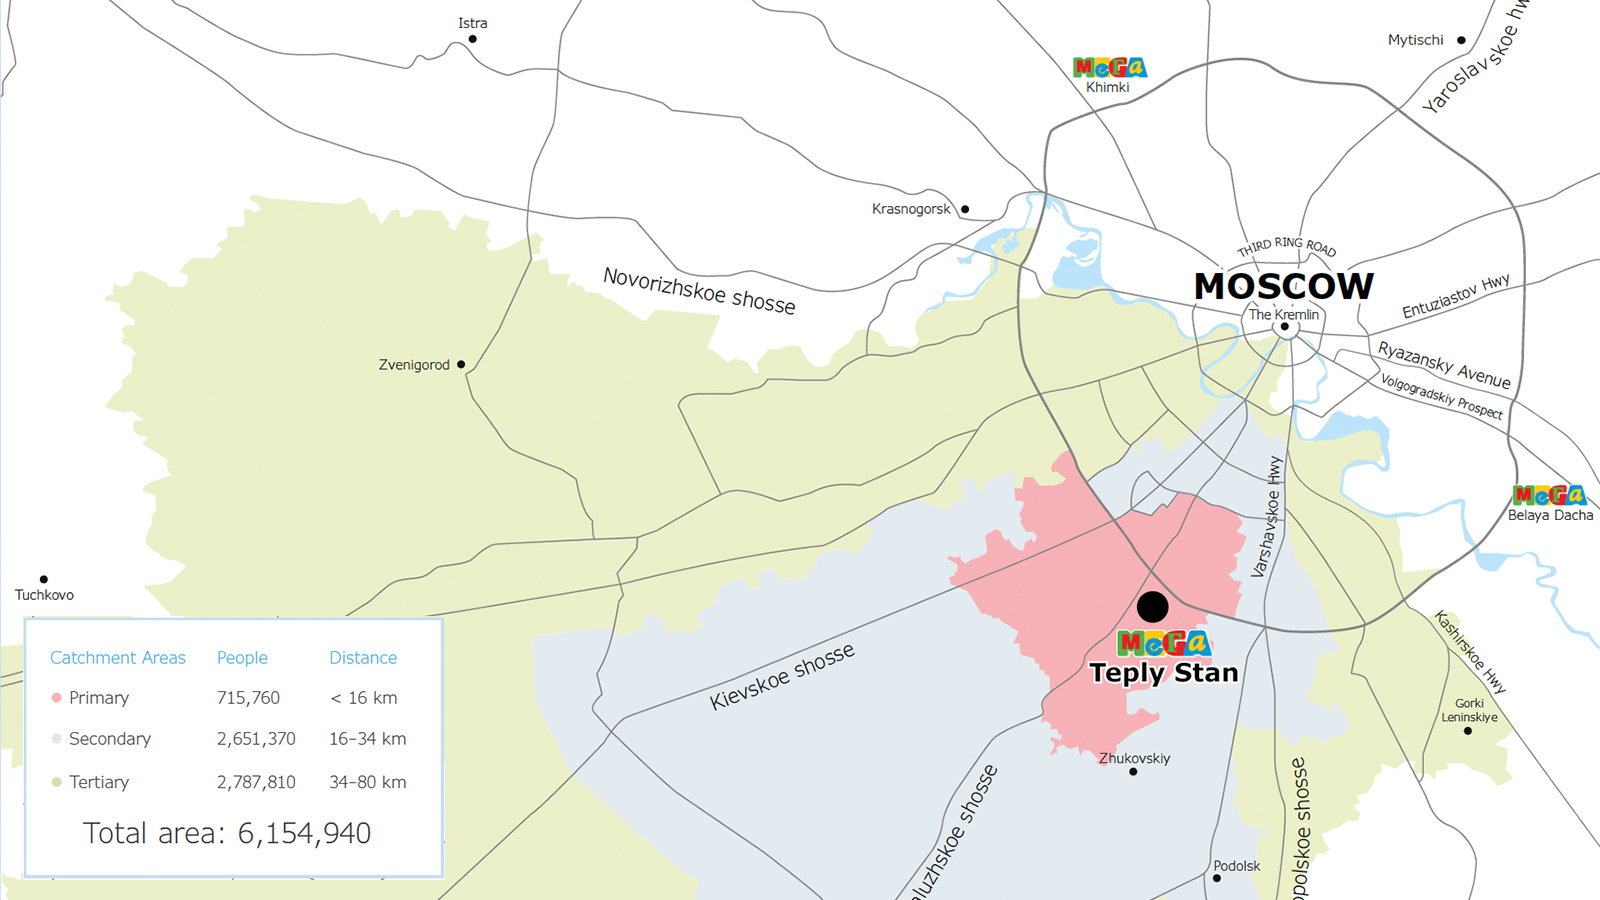 MEGA Teply Stan catchment area.